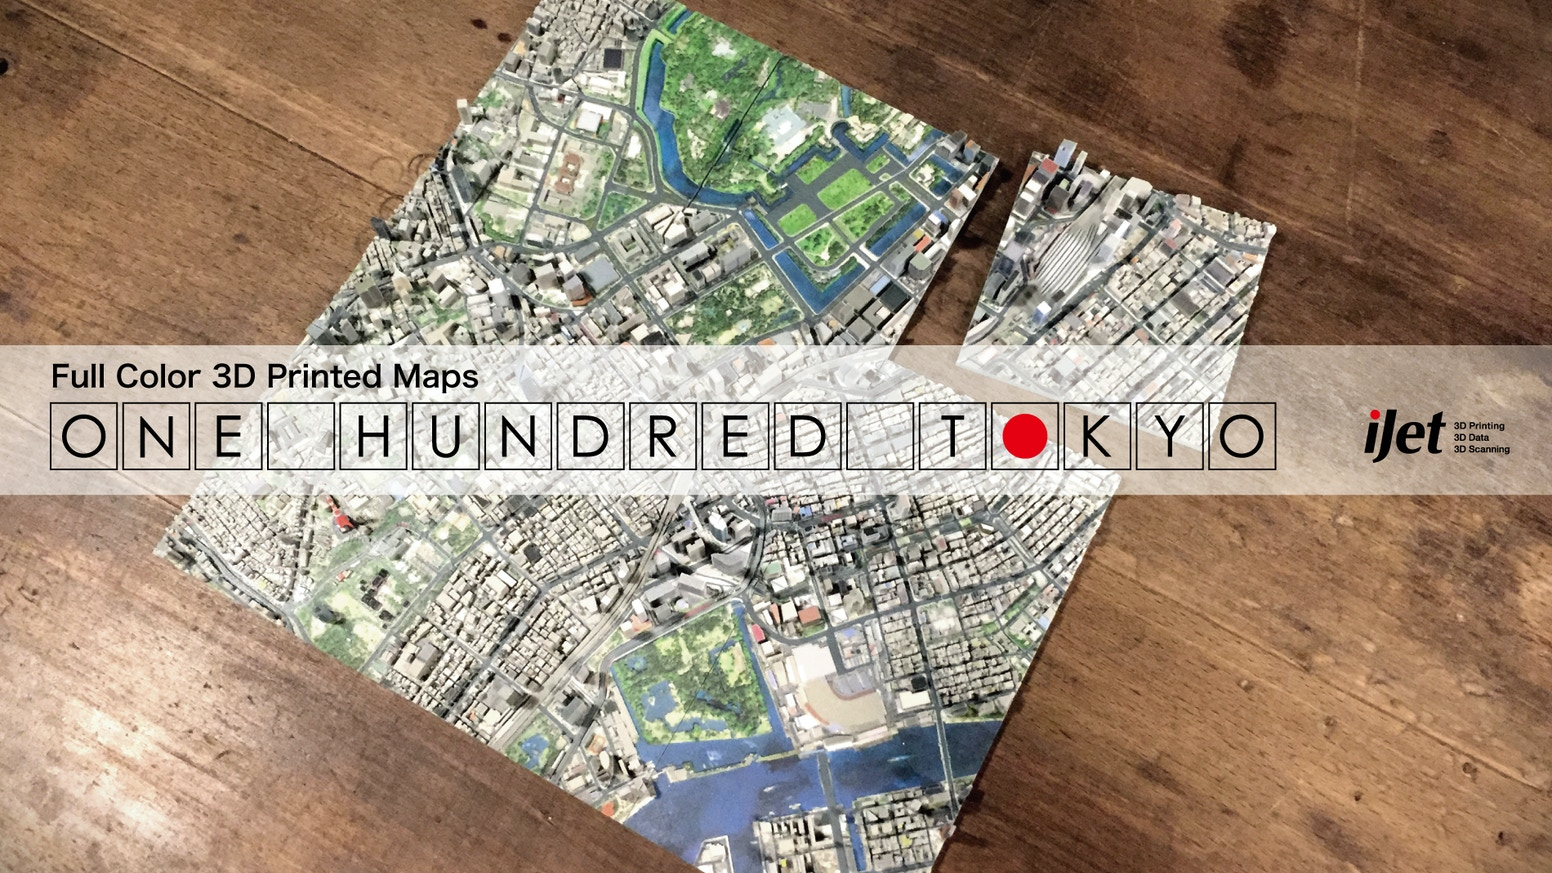 One hundred tokyo full color 3d printed maps by ijet - Buy 3d printed house ...